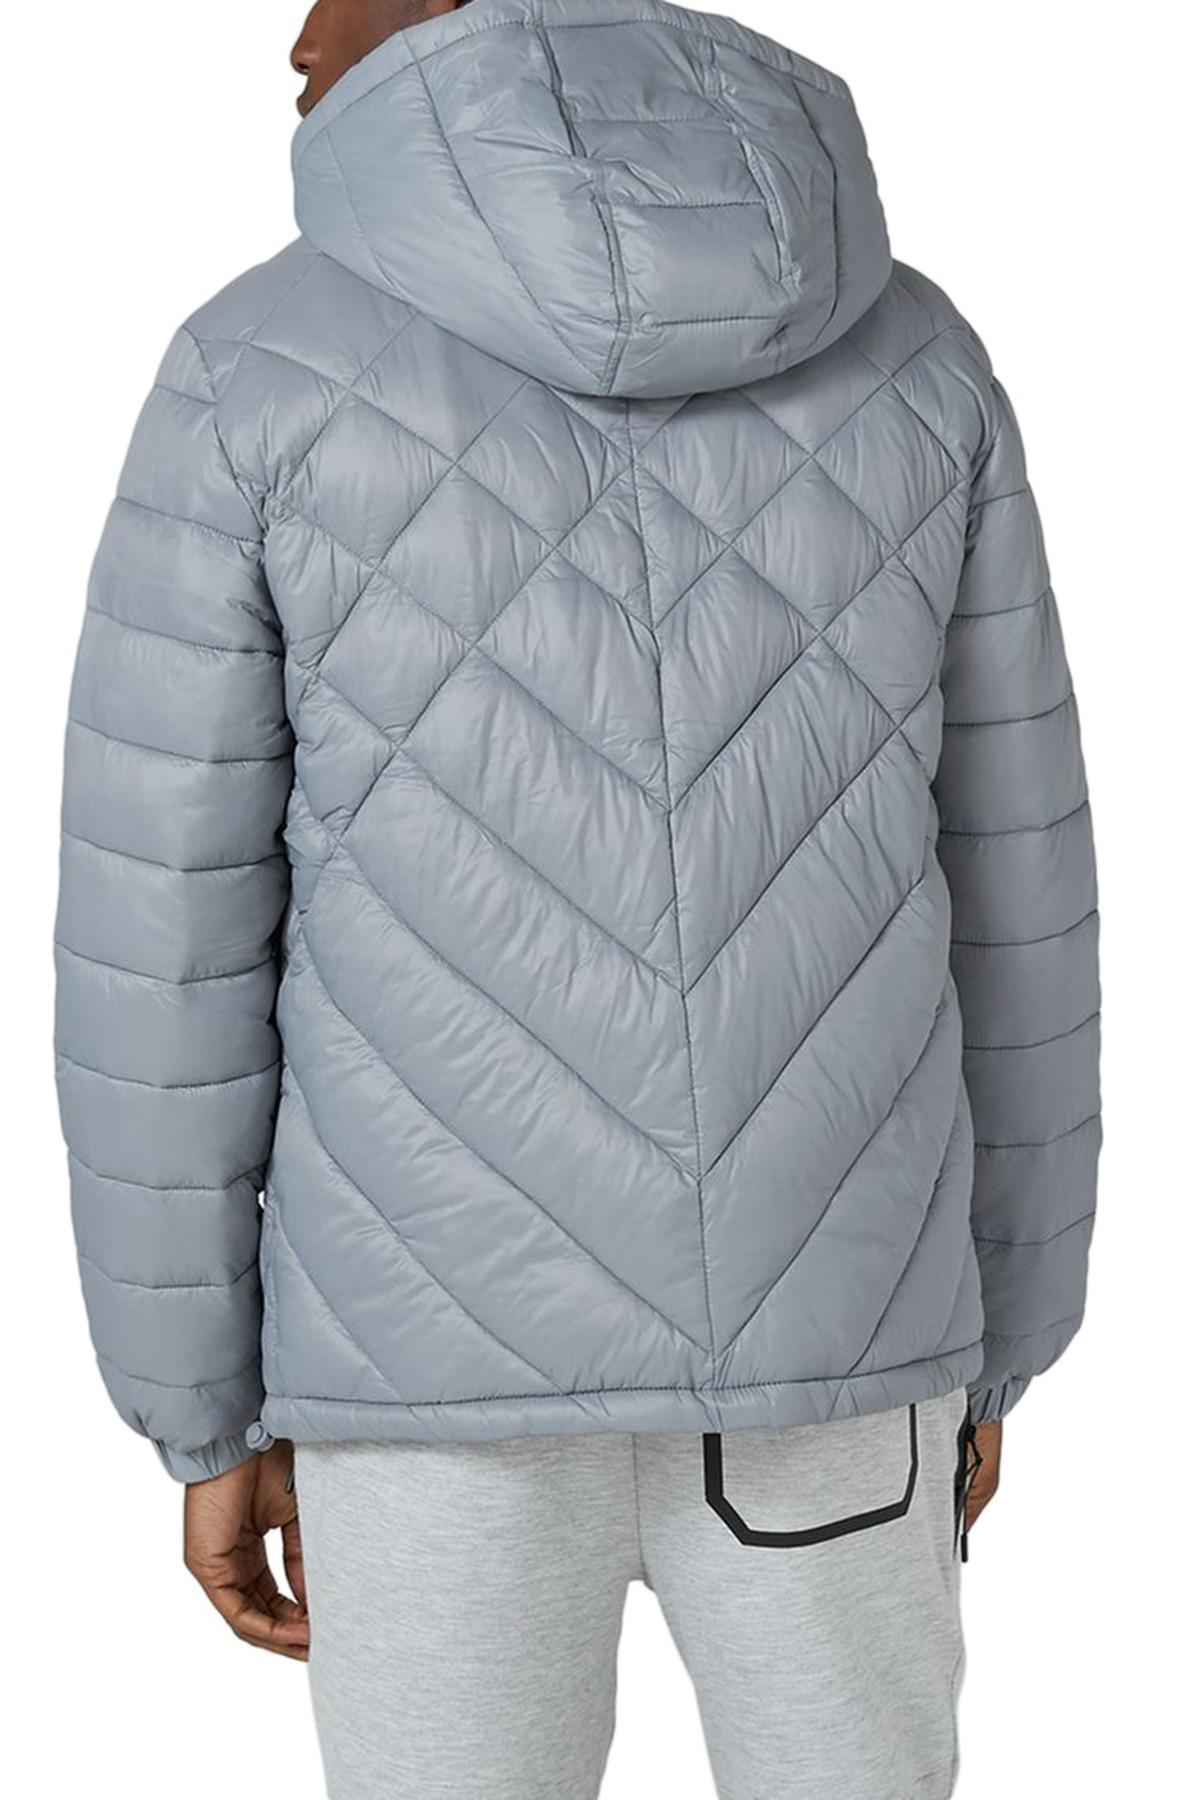 Lyst Topman Hooded Quilted Jacket In Gray For Men